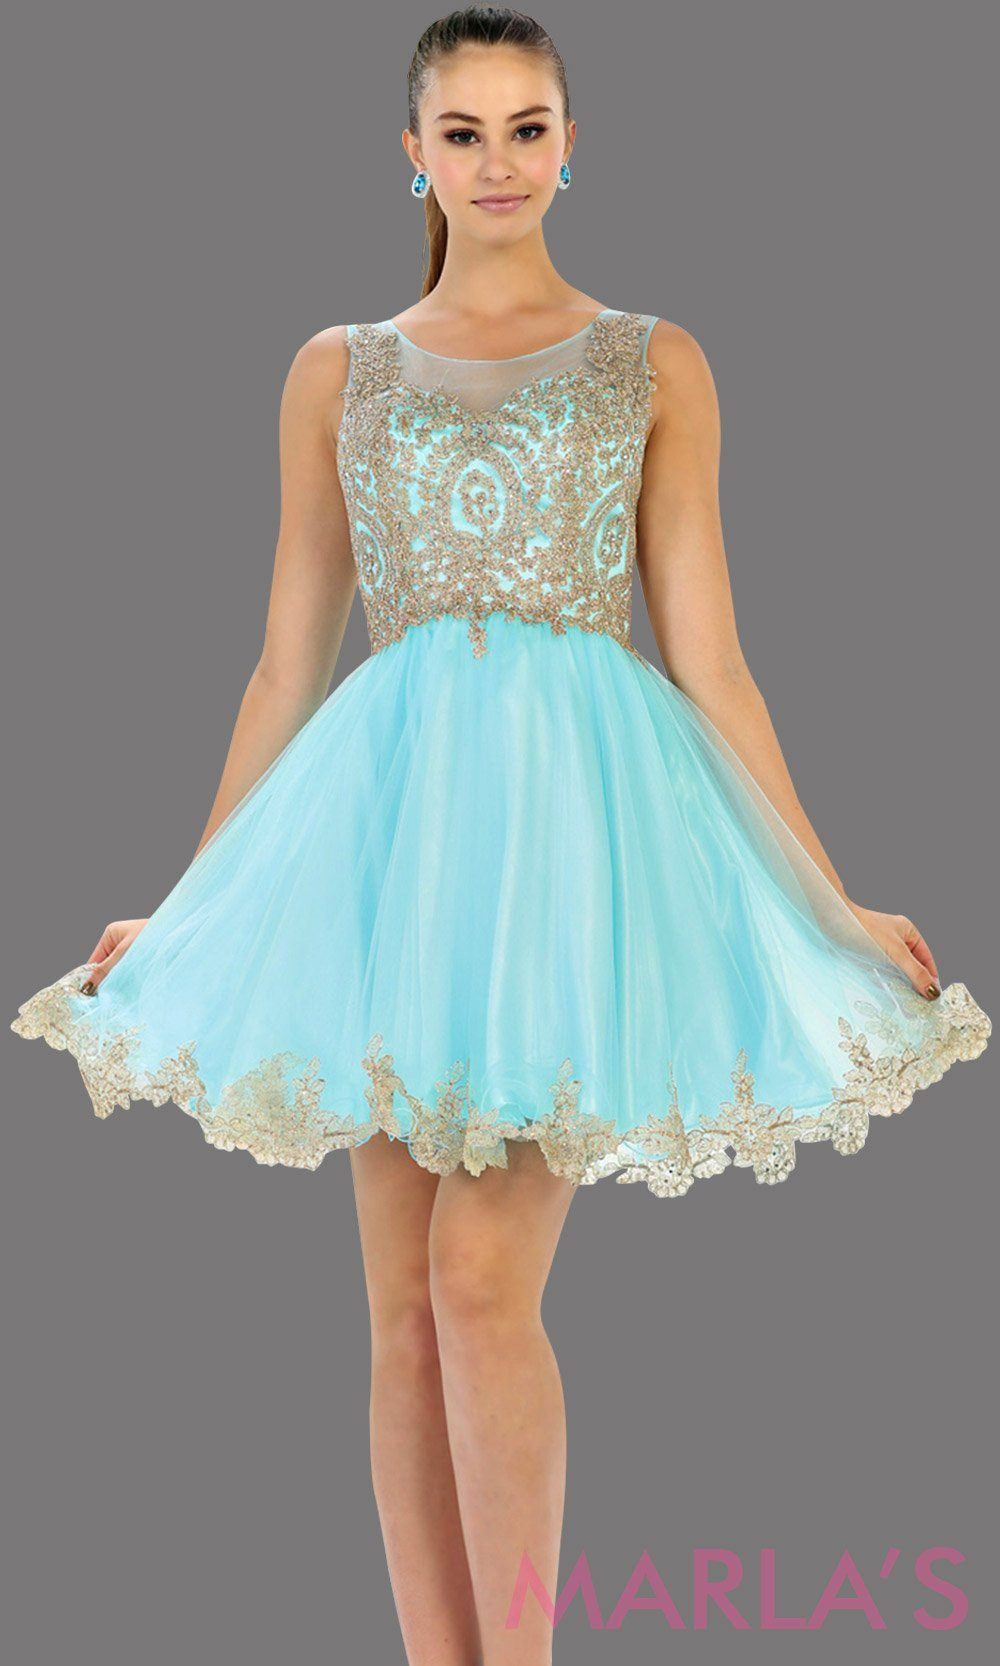 Short High Neck Illusion Aqua Blue Dress with Embroidery ...